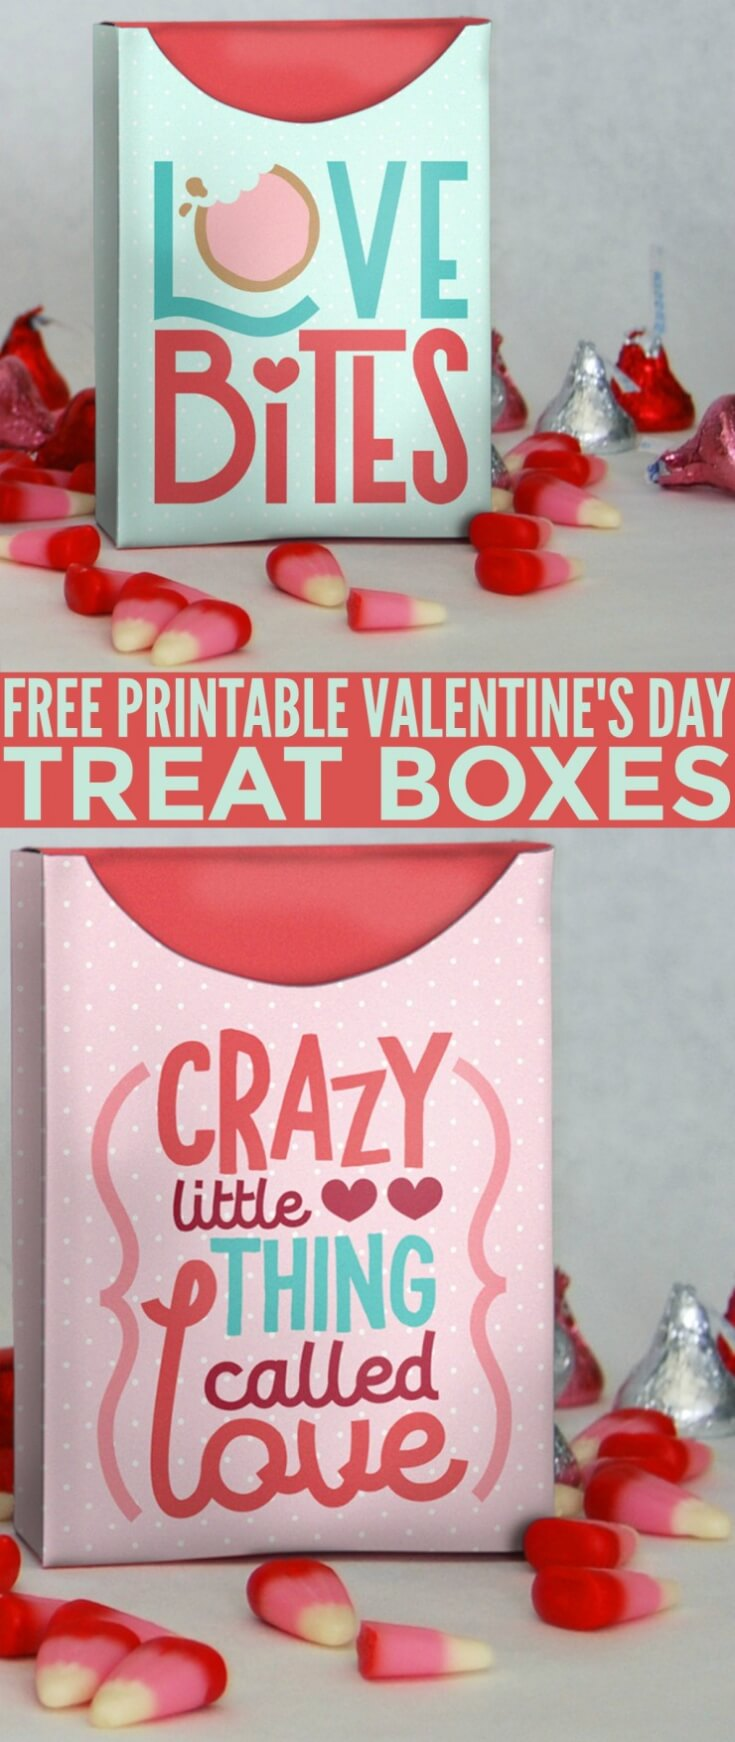 valentines-day-treat-boxes